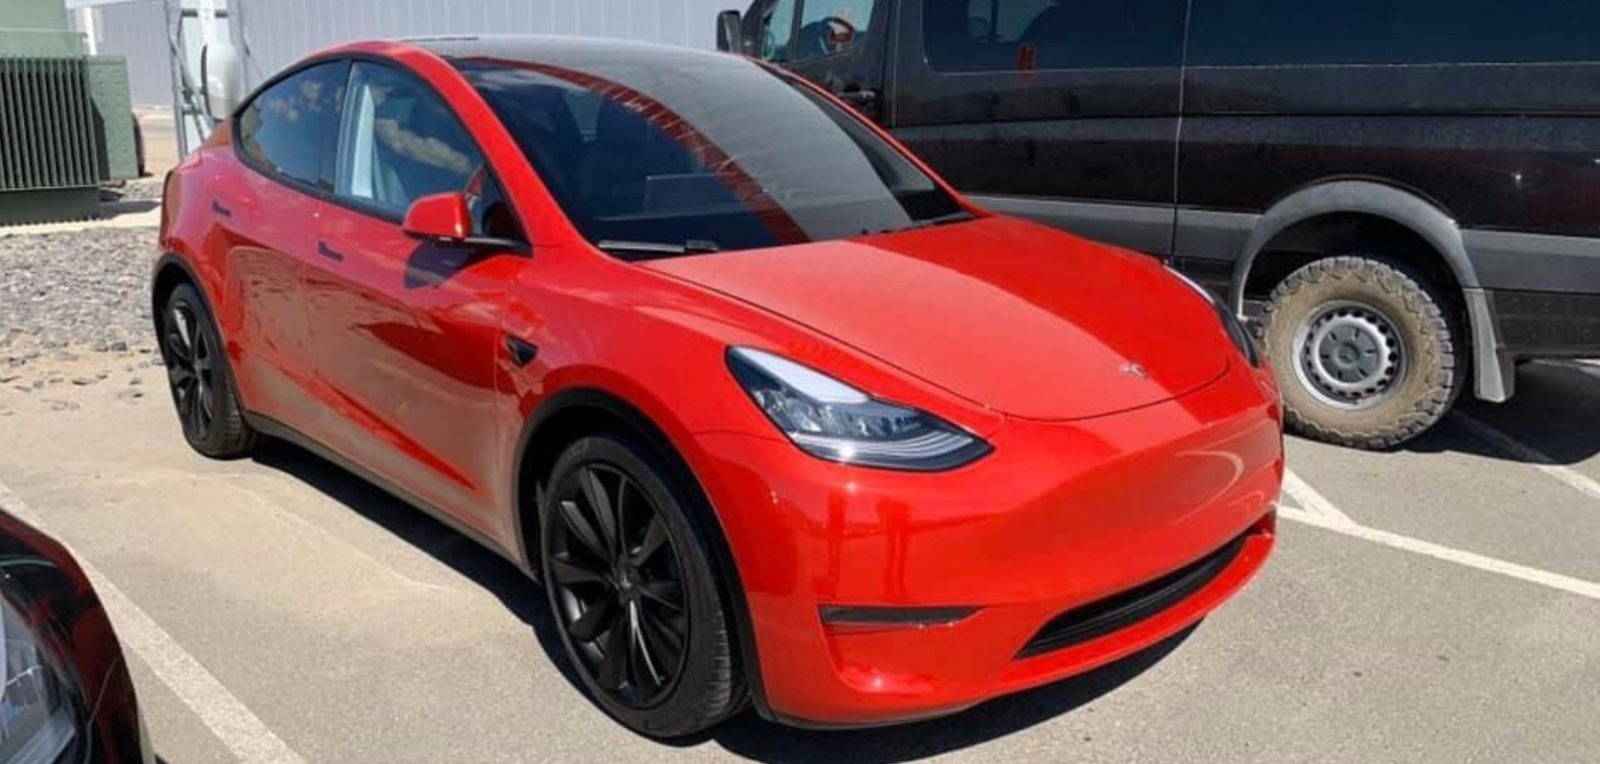 Tesla Model Y: beautiful new bright red prototype spotted at Gigafactory 1